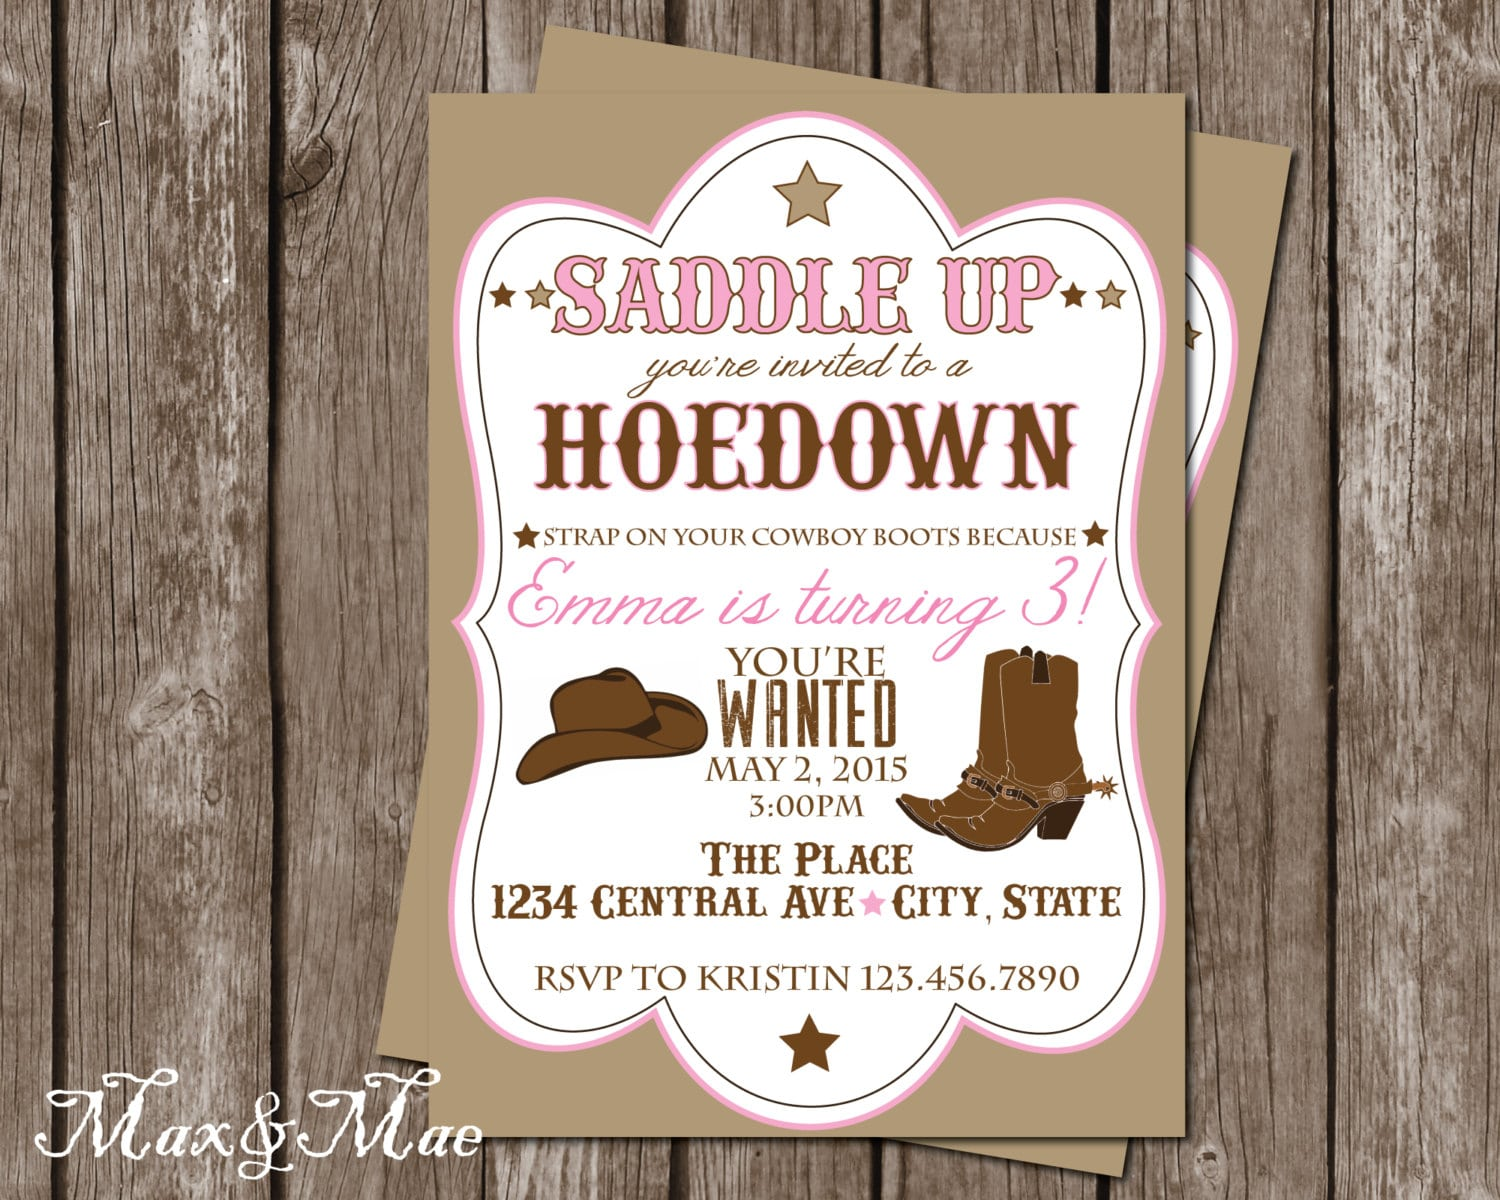 Hoedown Party Invitations - Mickey Mouse Invitations Templates